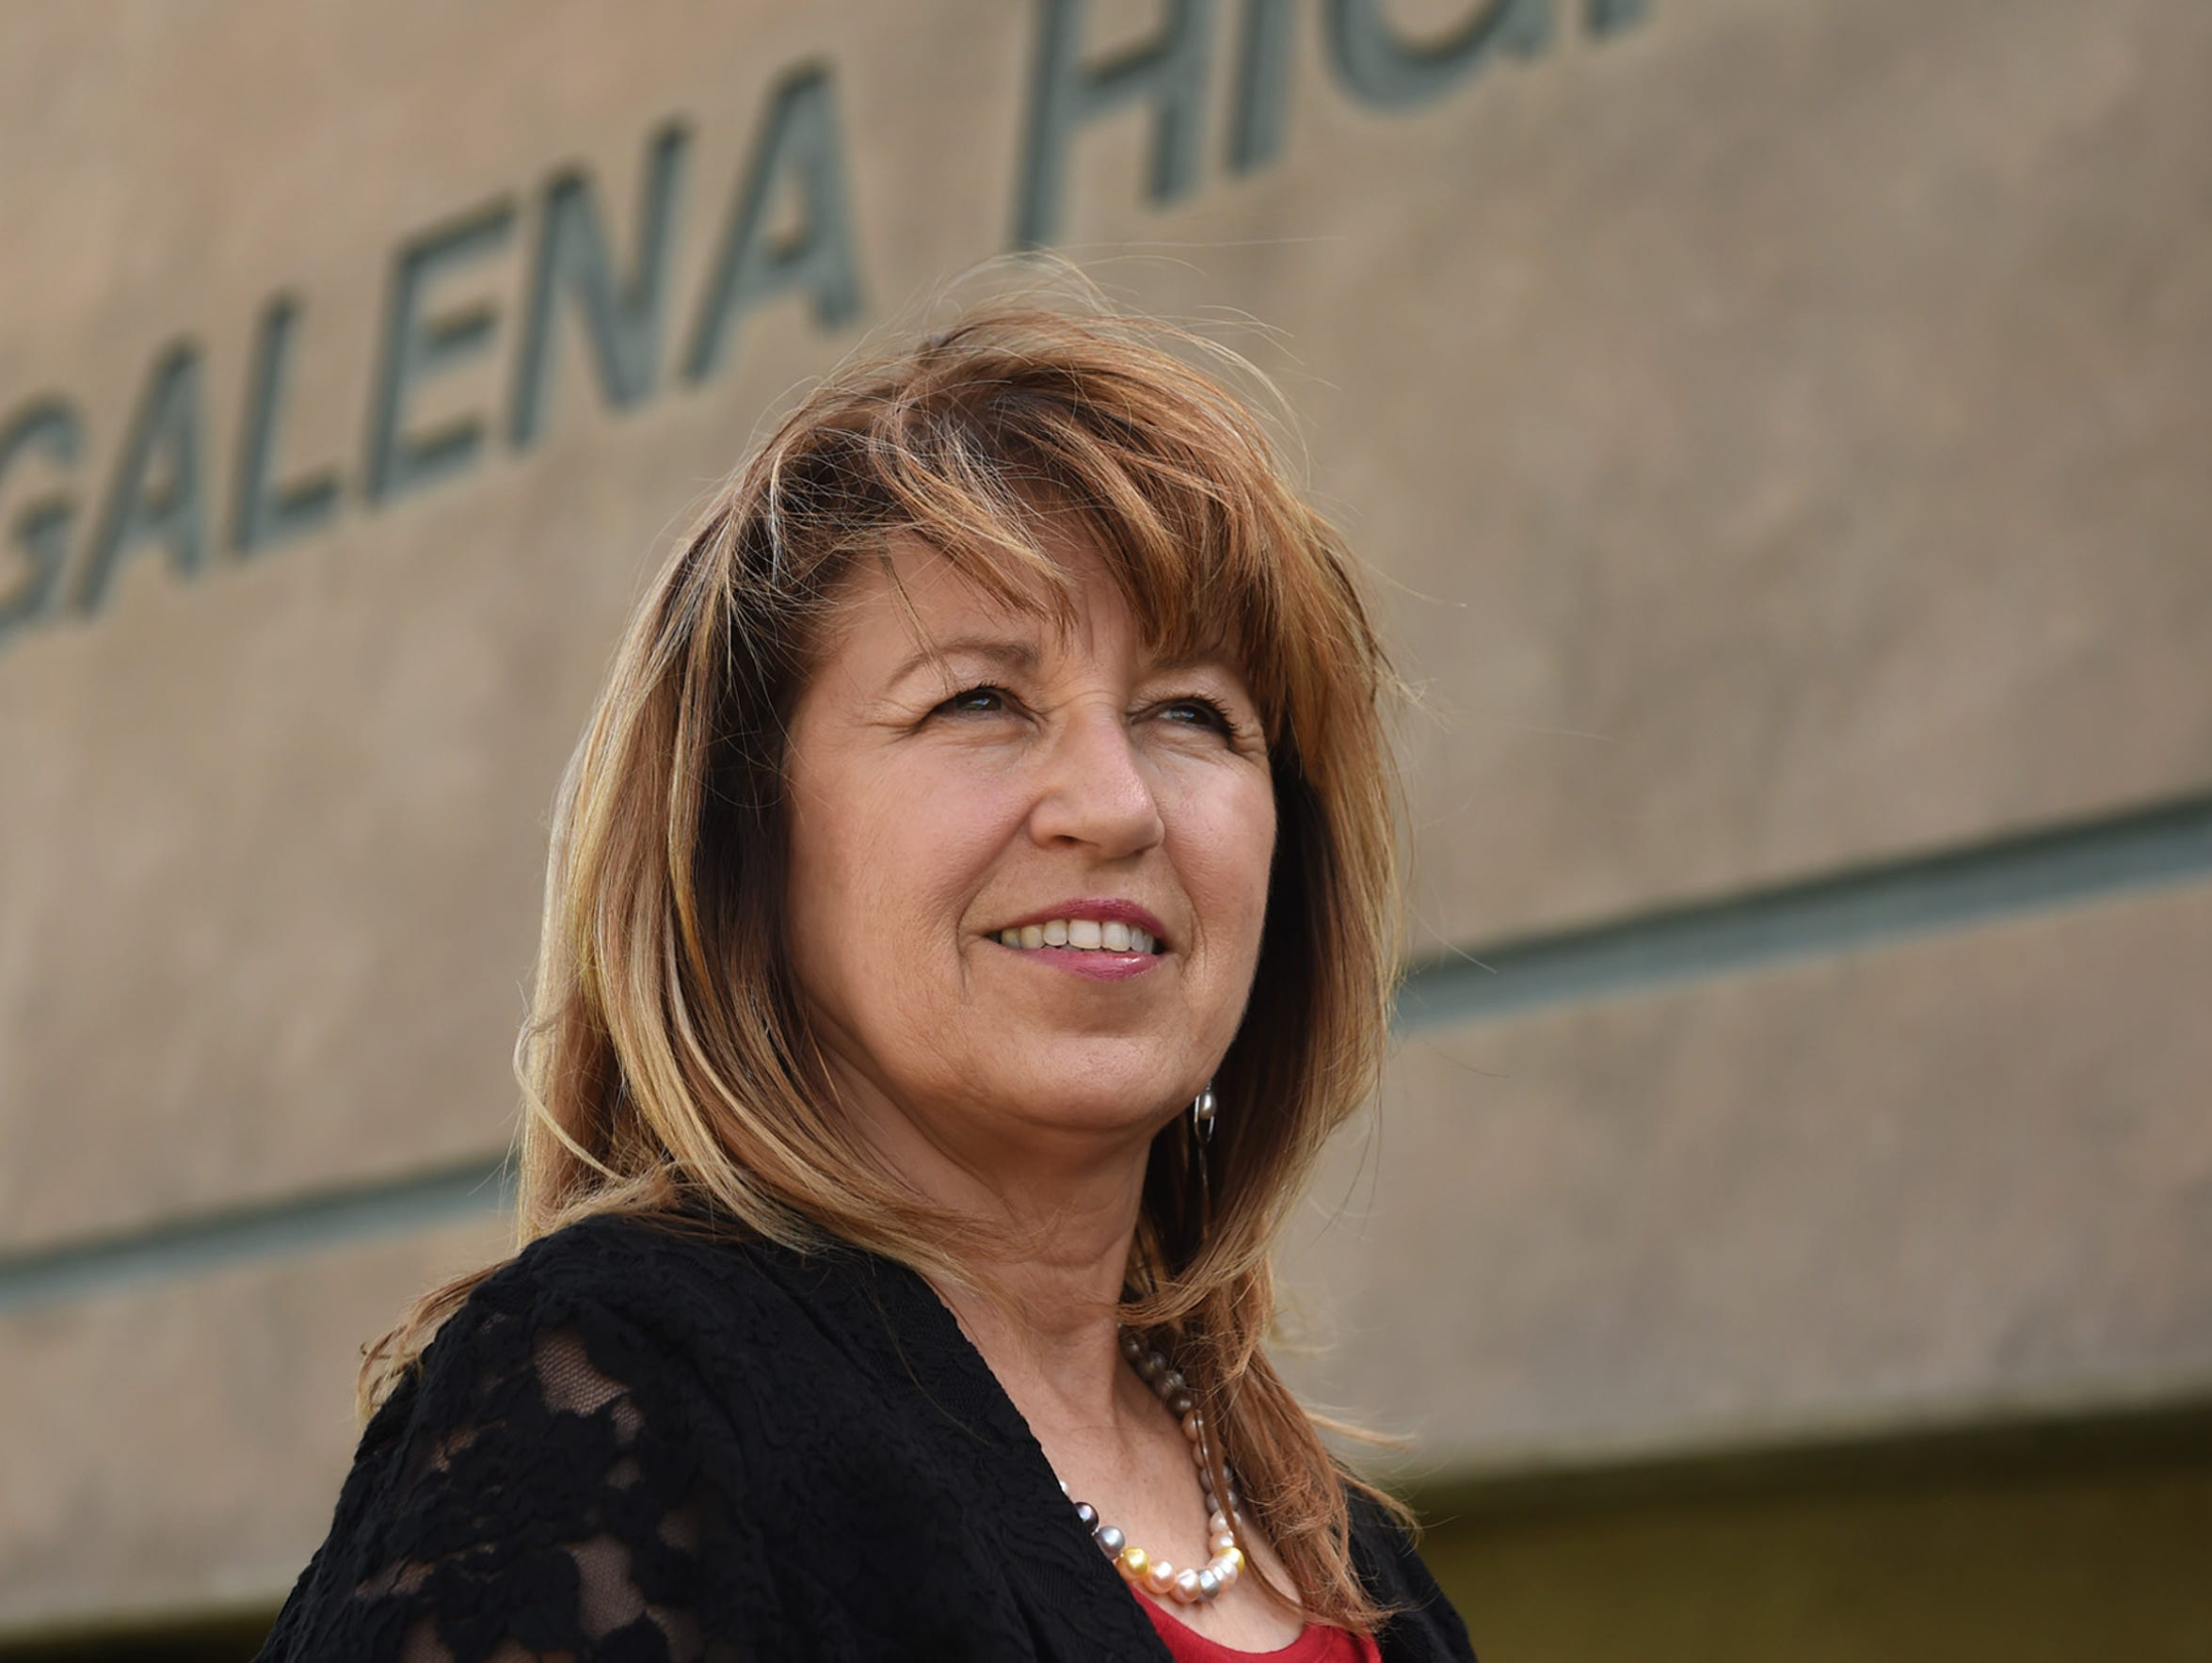 Susan Zeiter stands outside Galena High School on April